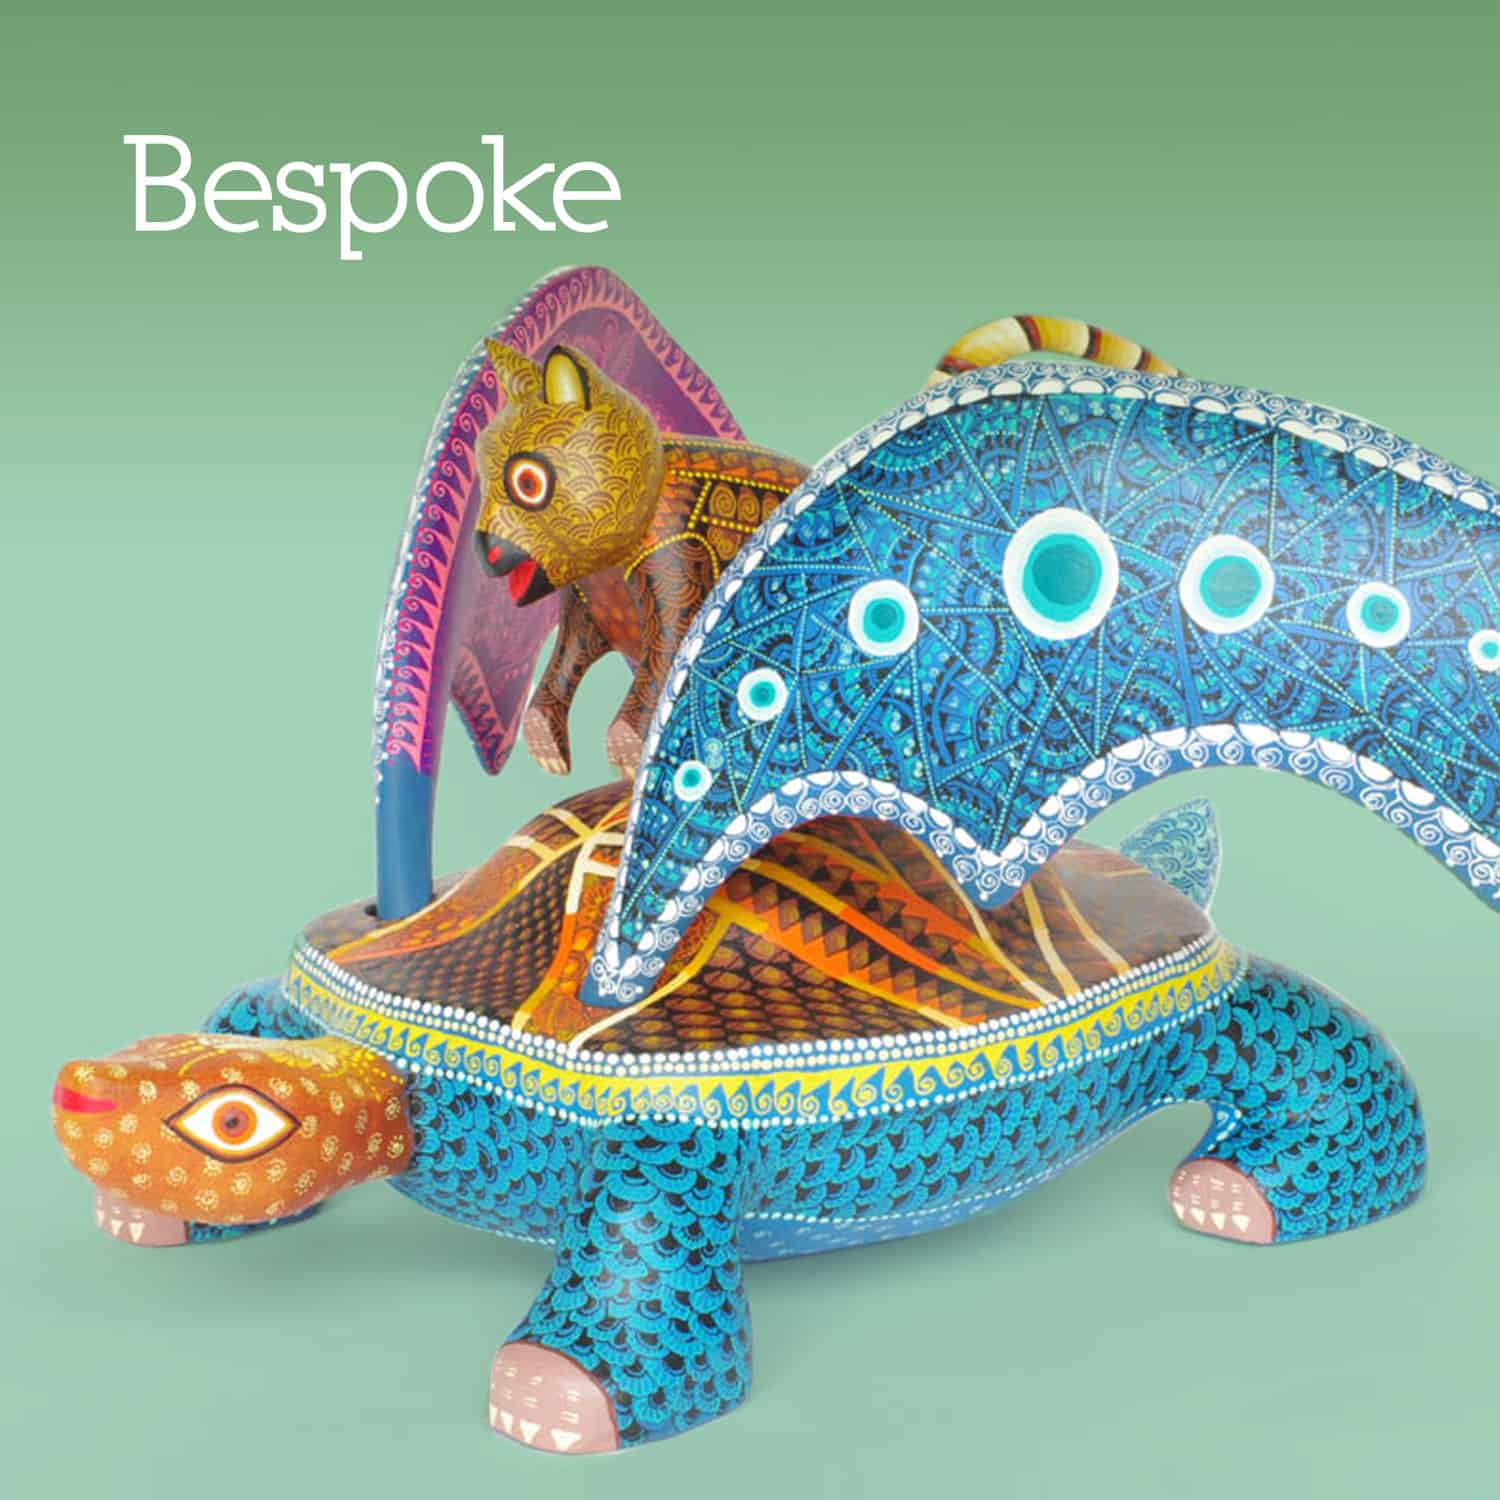 Hand made bespoke alebrije of a turtle with wings and a quokka riding on it's back